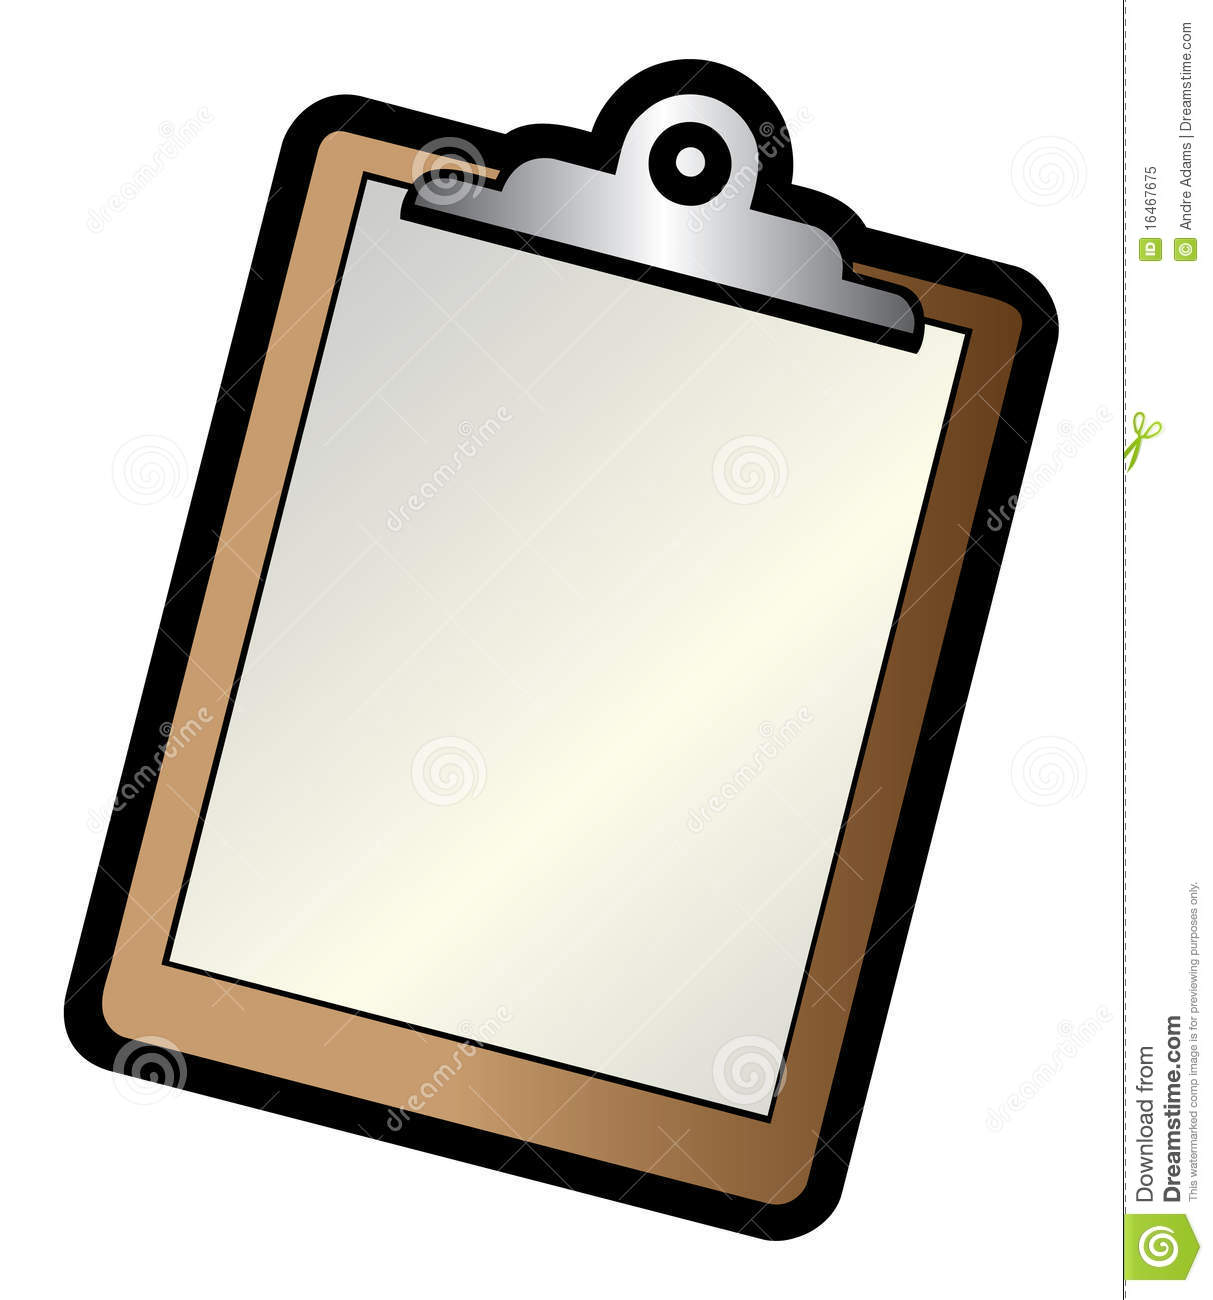 Clipboard Royalty Free Stock Photo - Image: 16467675